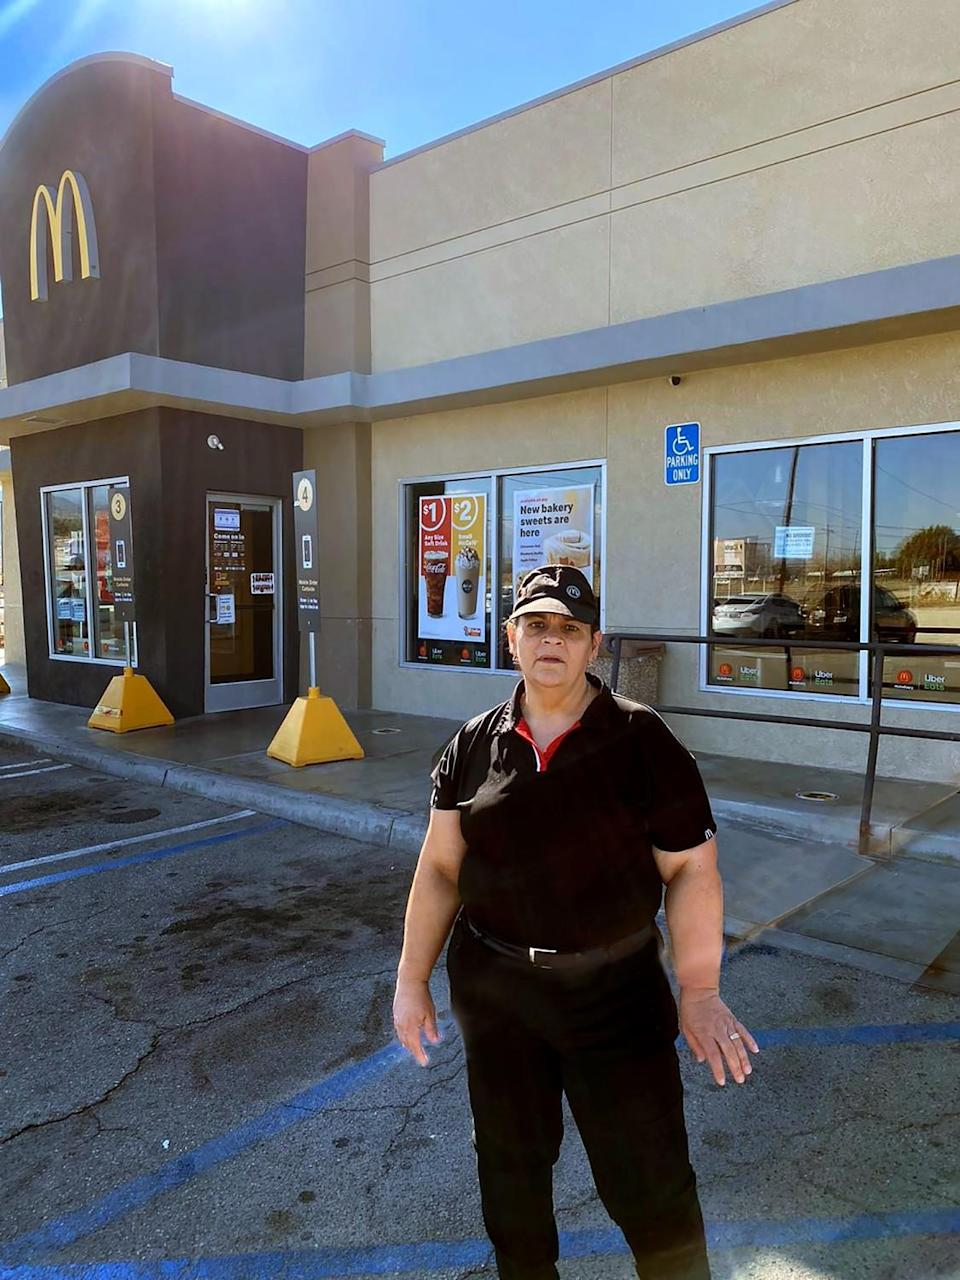 Imelda Rosales at the McDonald's outlet where she has worked for 11 years, in Littlerock, Calif.